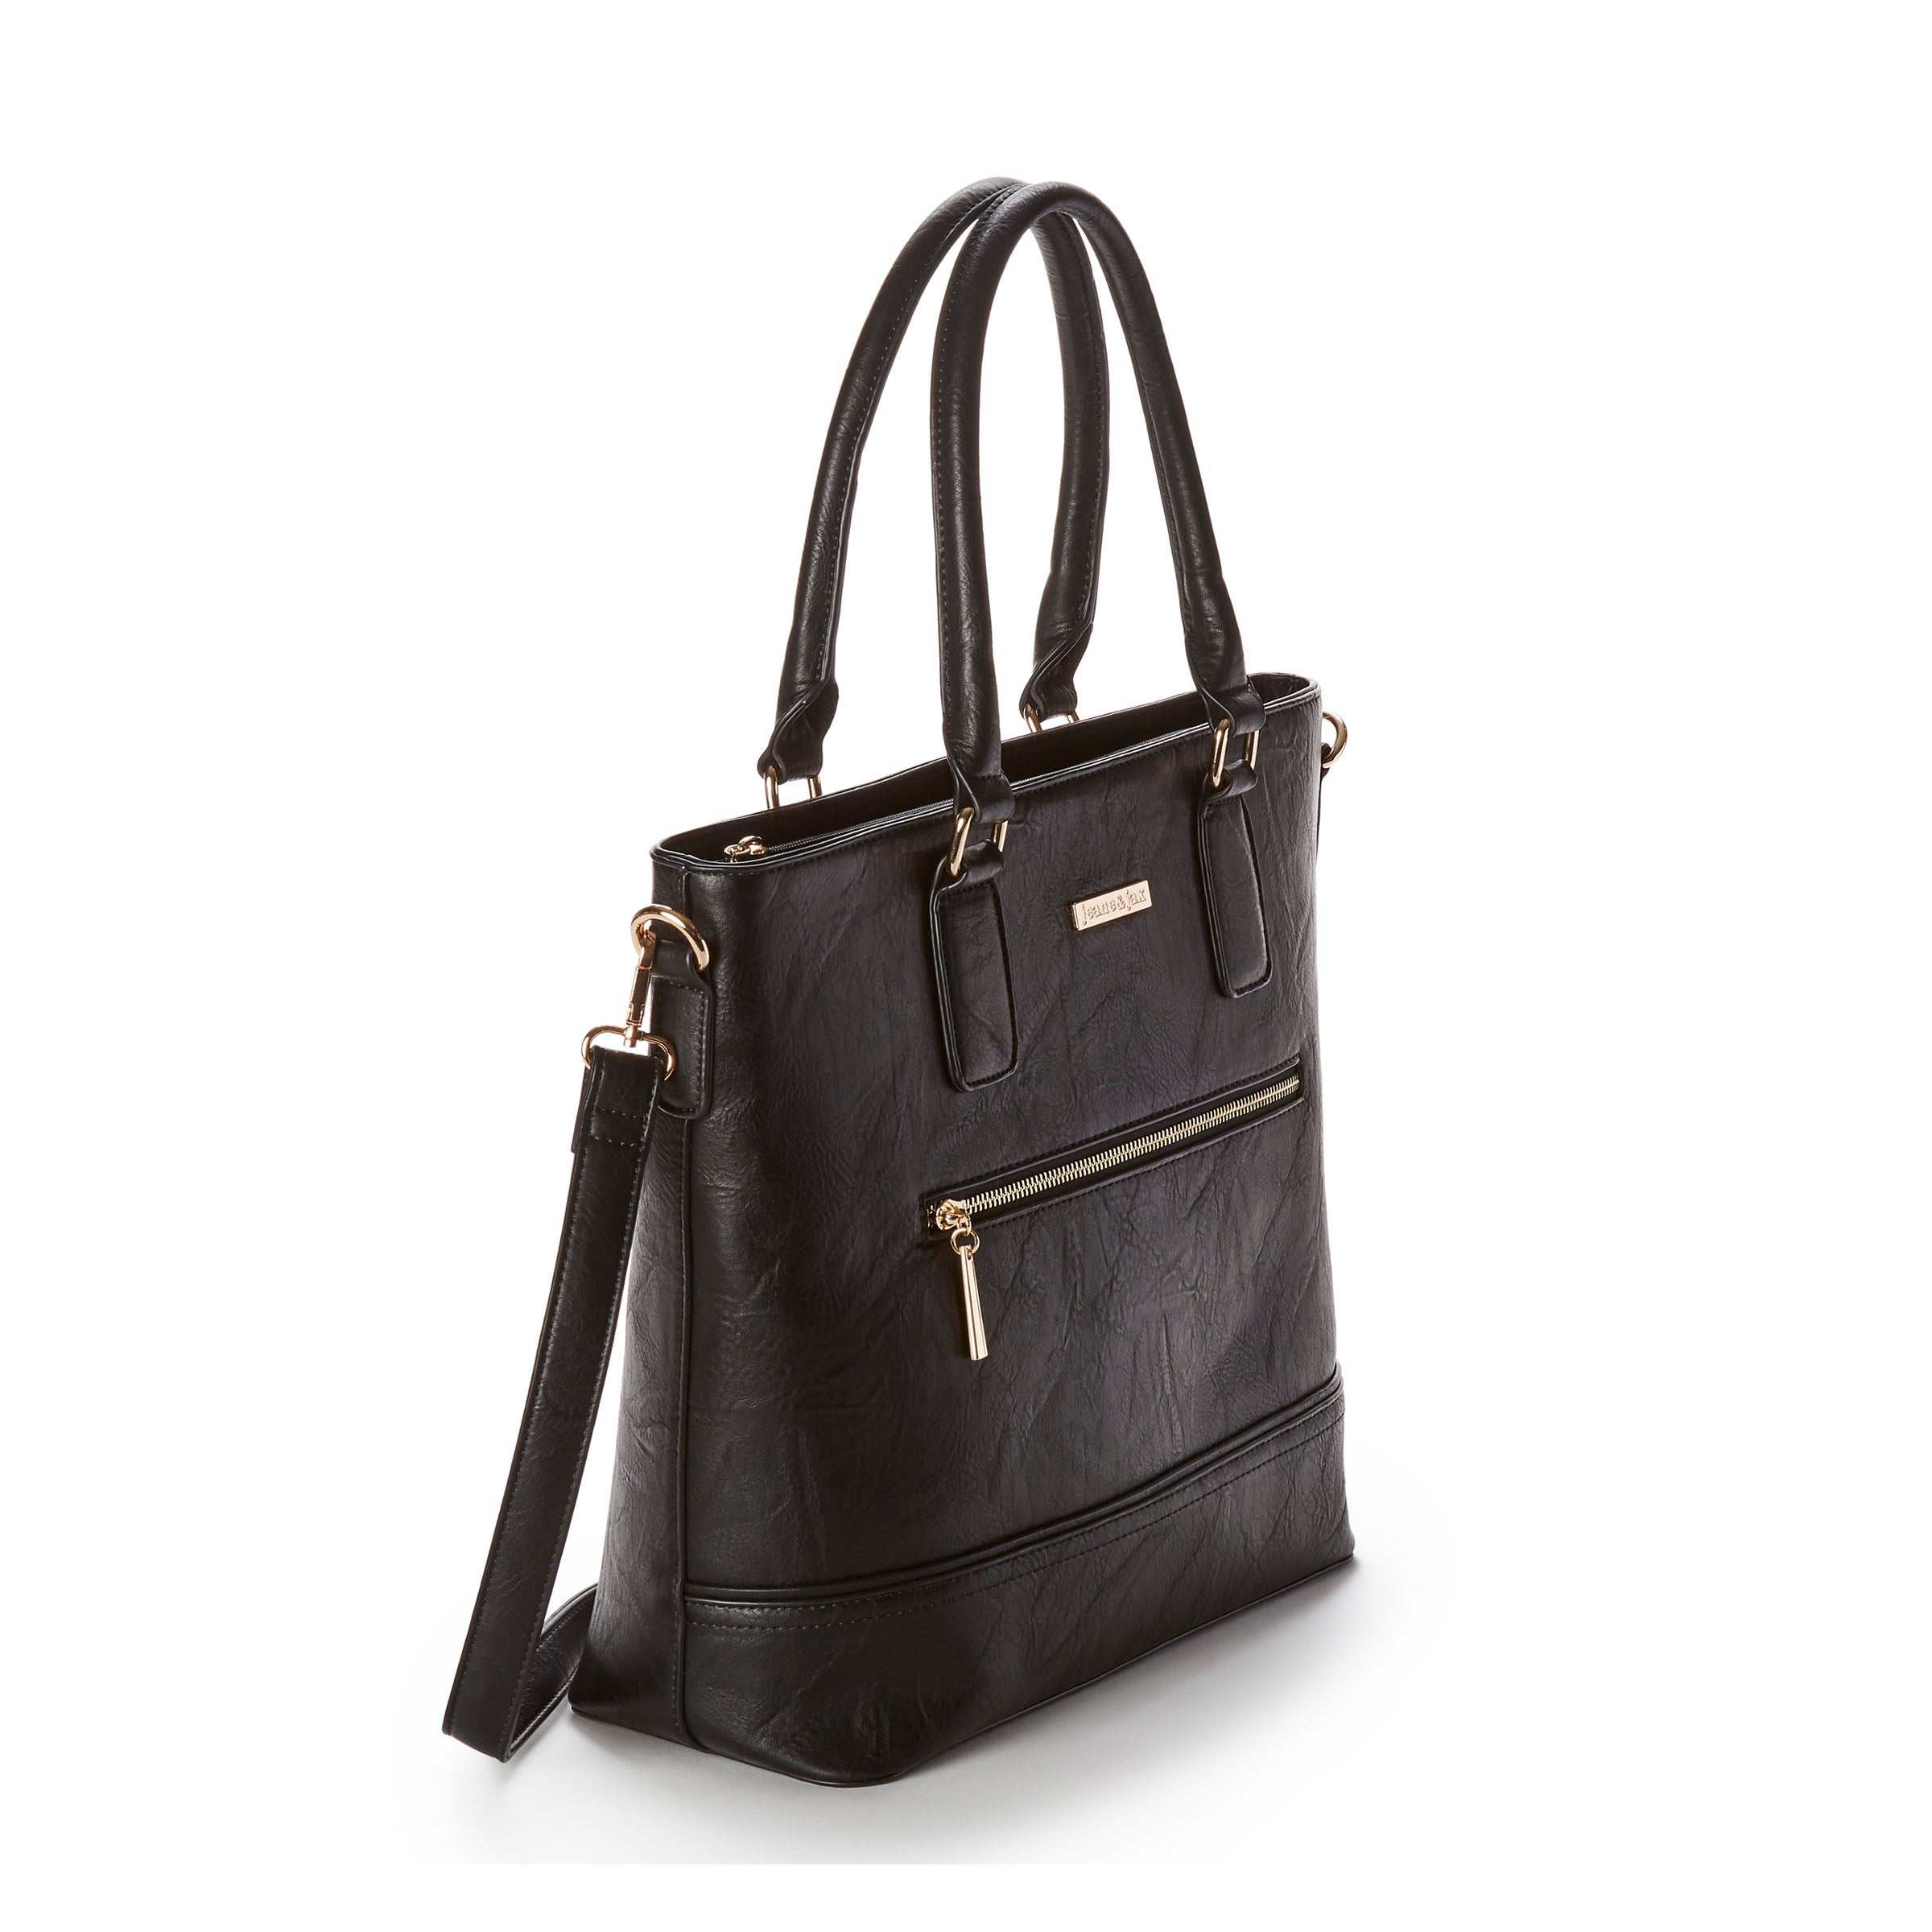 6e6e57c0890 Vegan Leather Front Zip Tote Bag | jeane & jax